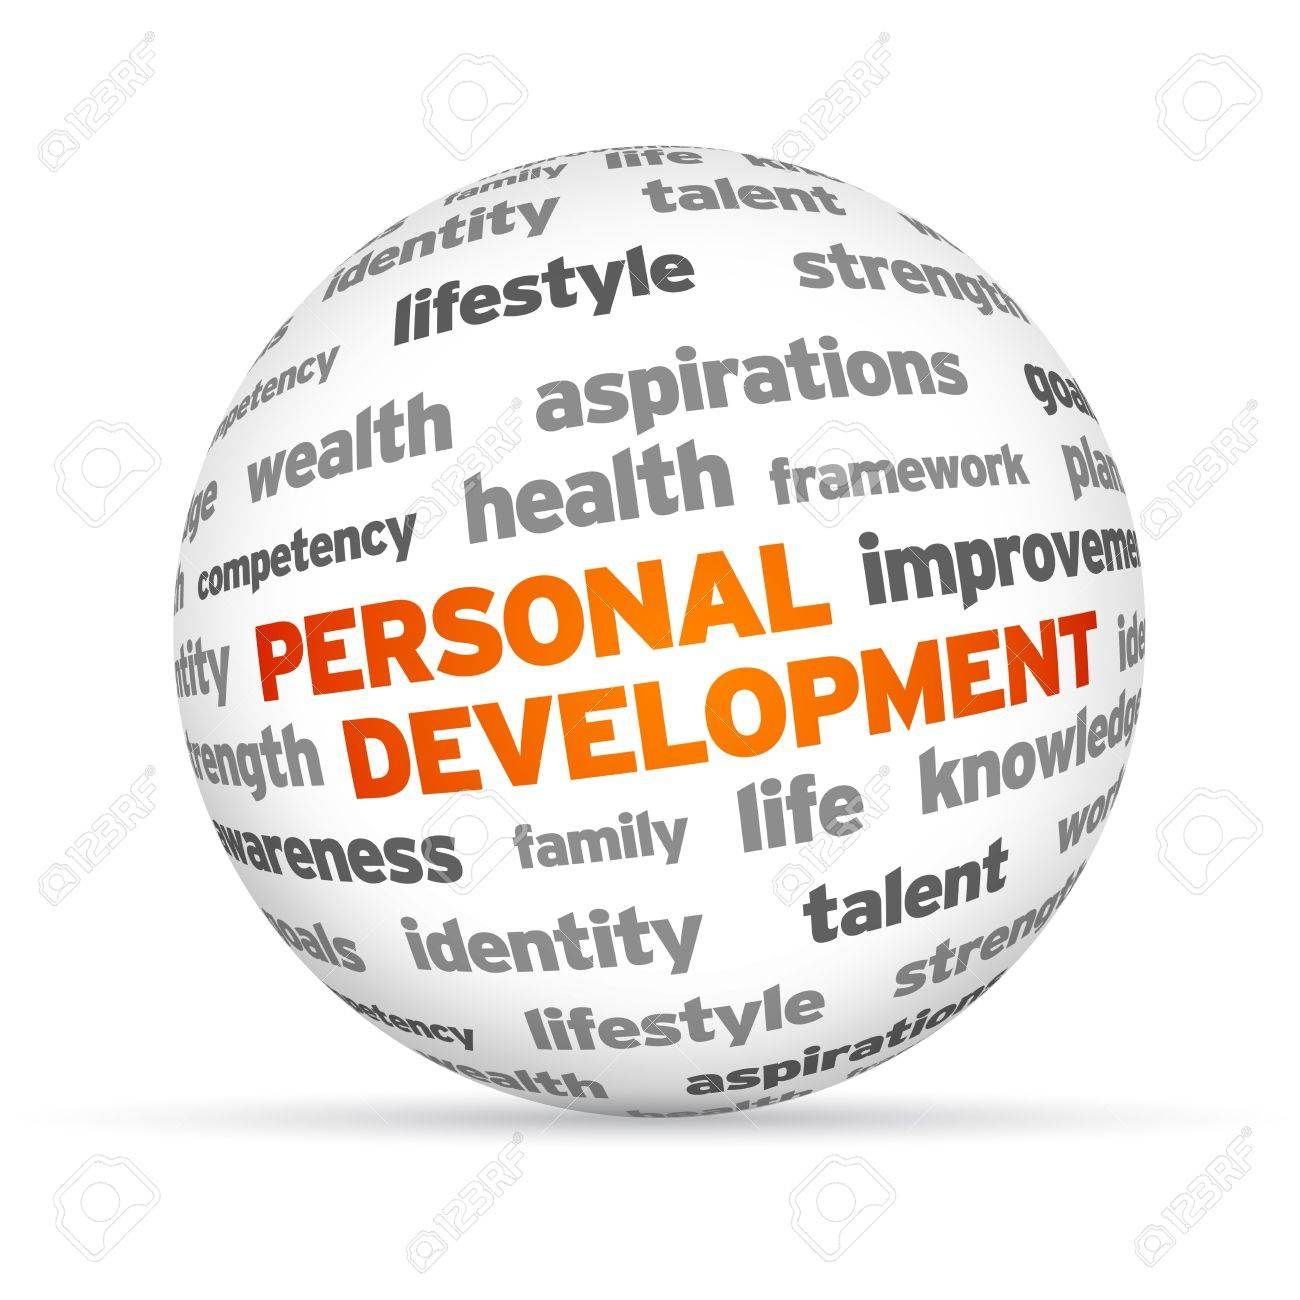 life aspiration stock photos pictures royalty life life aspiration 3d personal development word sphere on white background stock photo